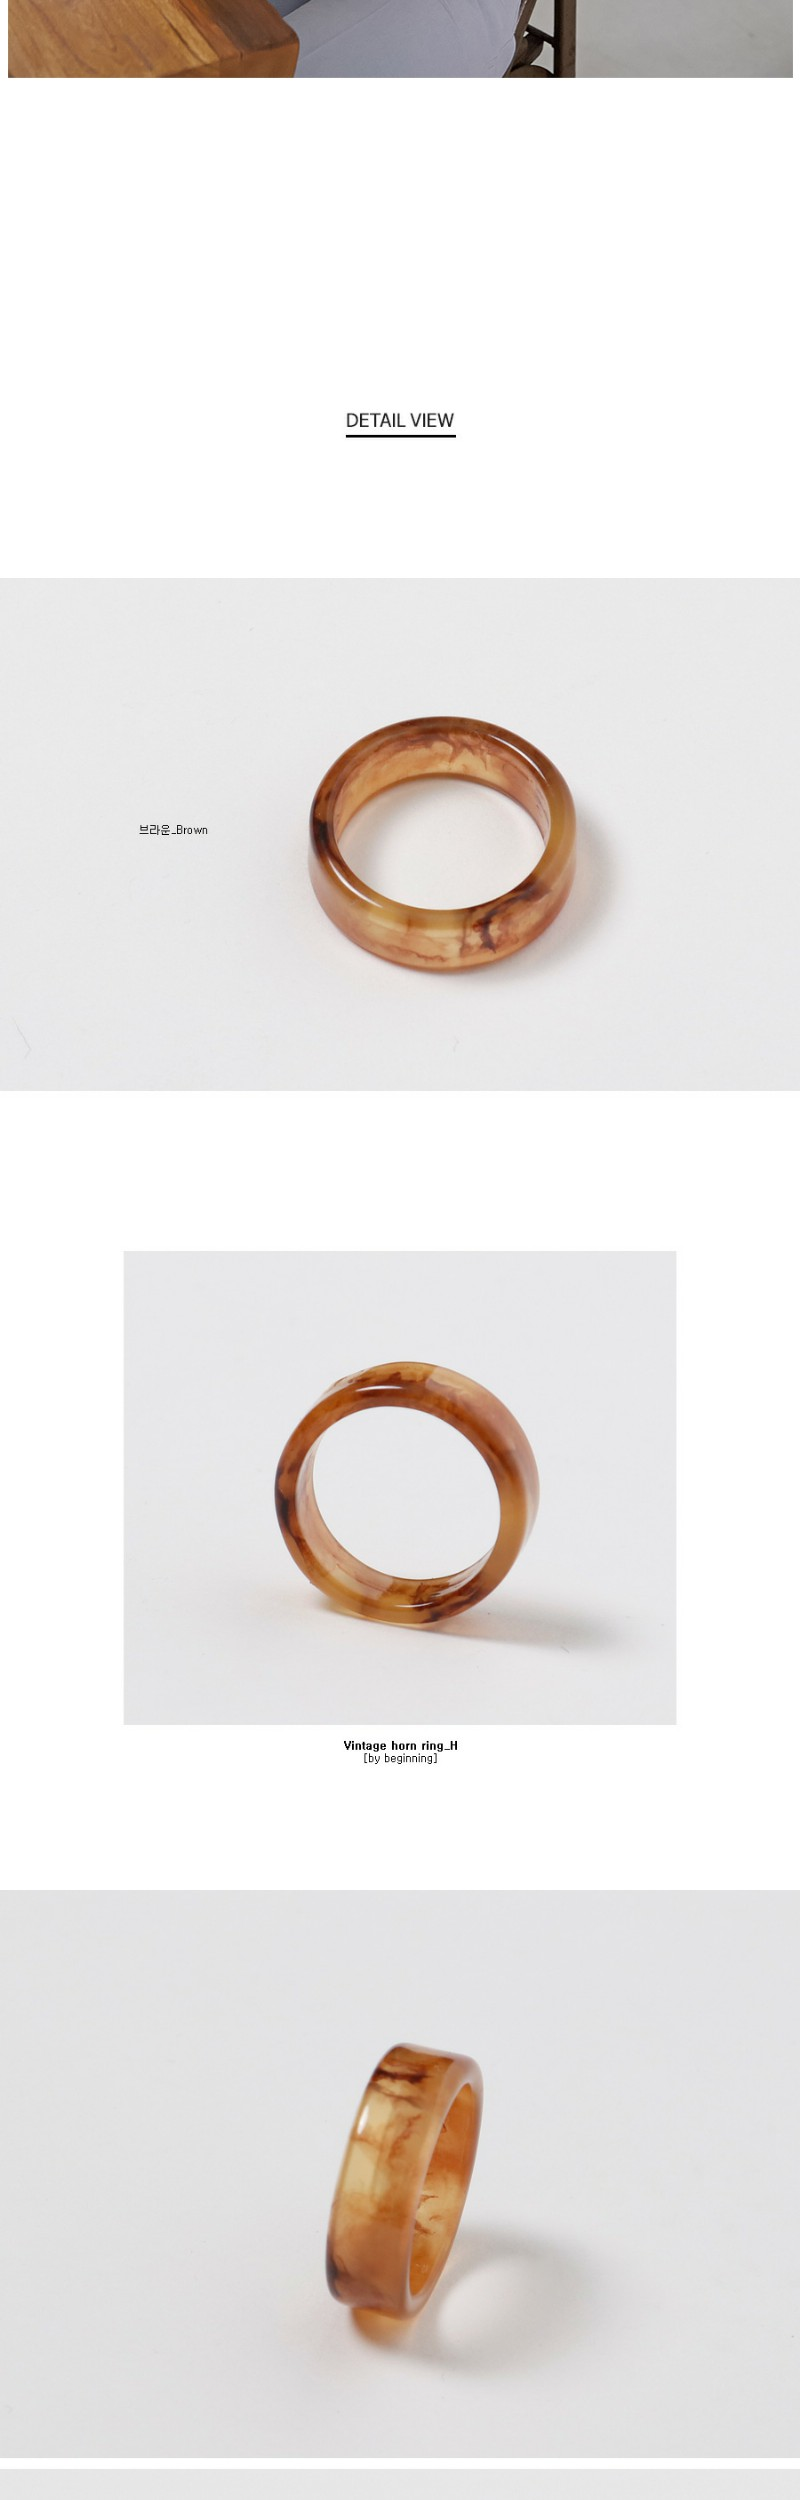 Vintage horn ring_H (size : one)[22일 입고 후 순차적배송]